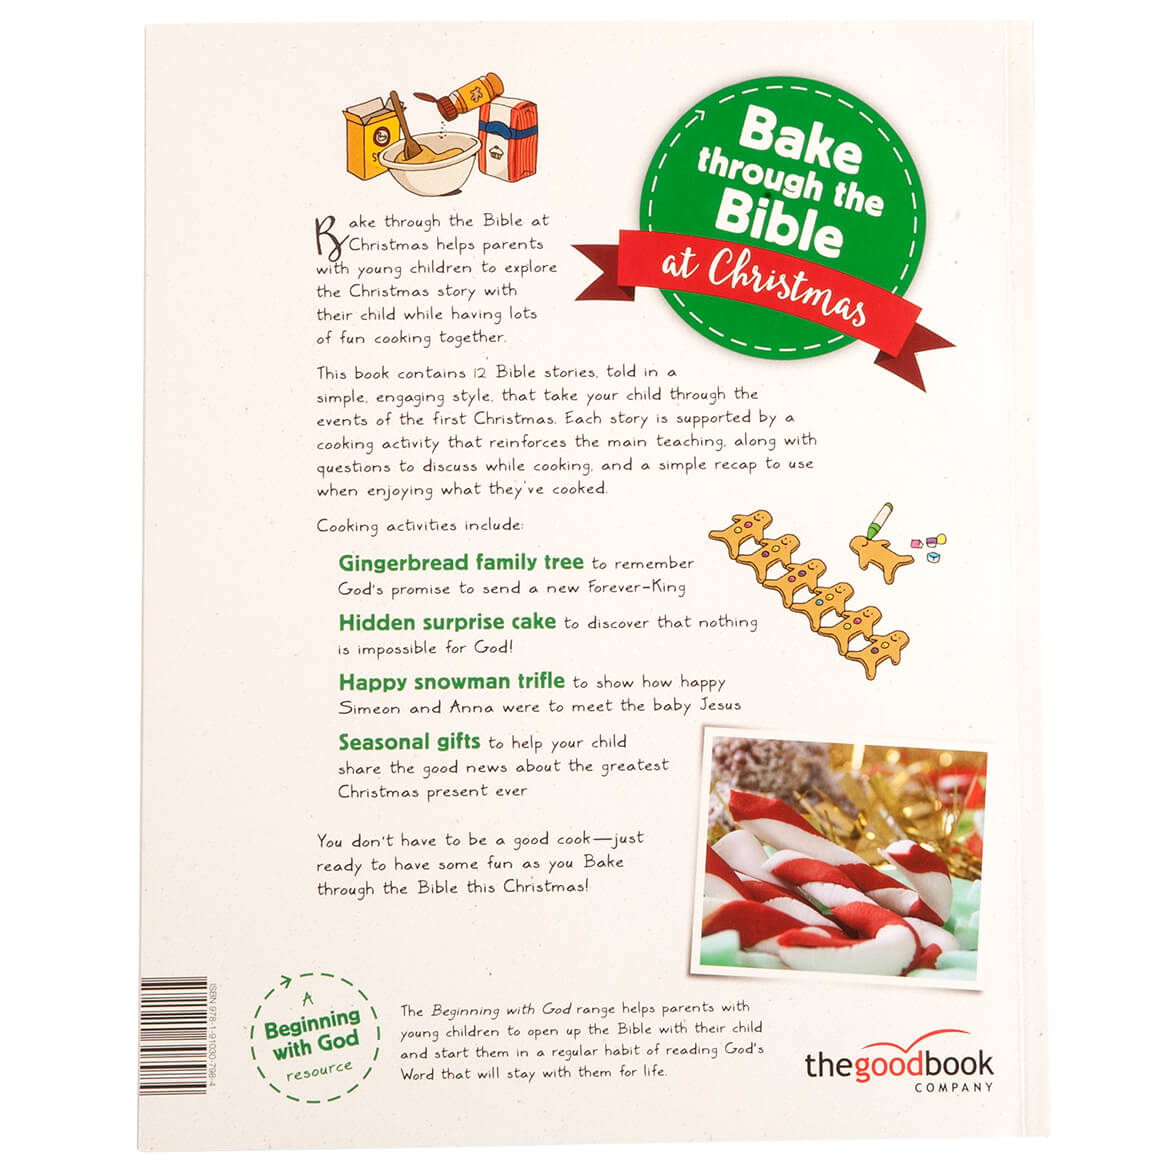 Bake Through the Bible at Christmas - Kids Cookbook - Walter Drake